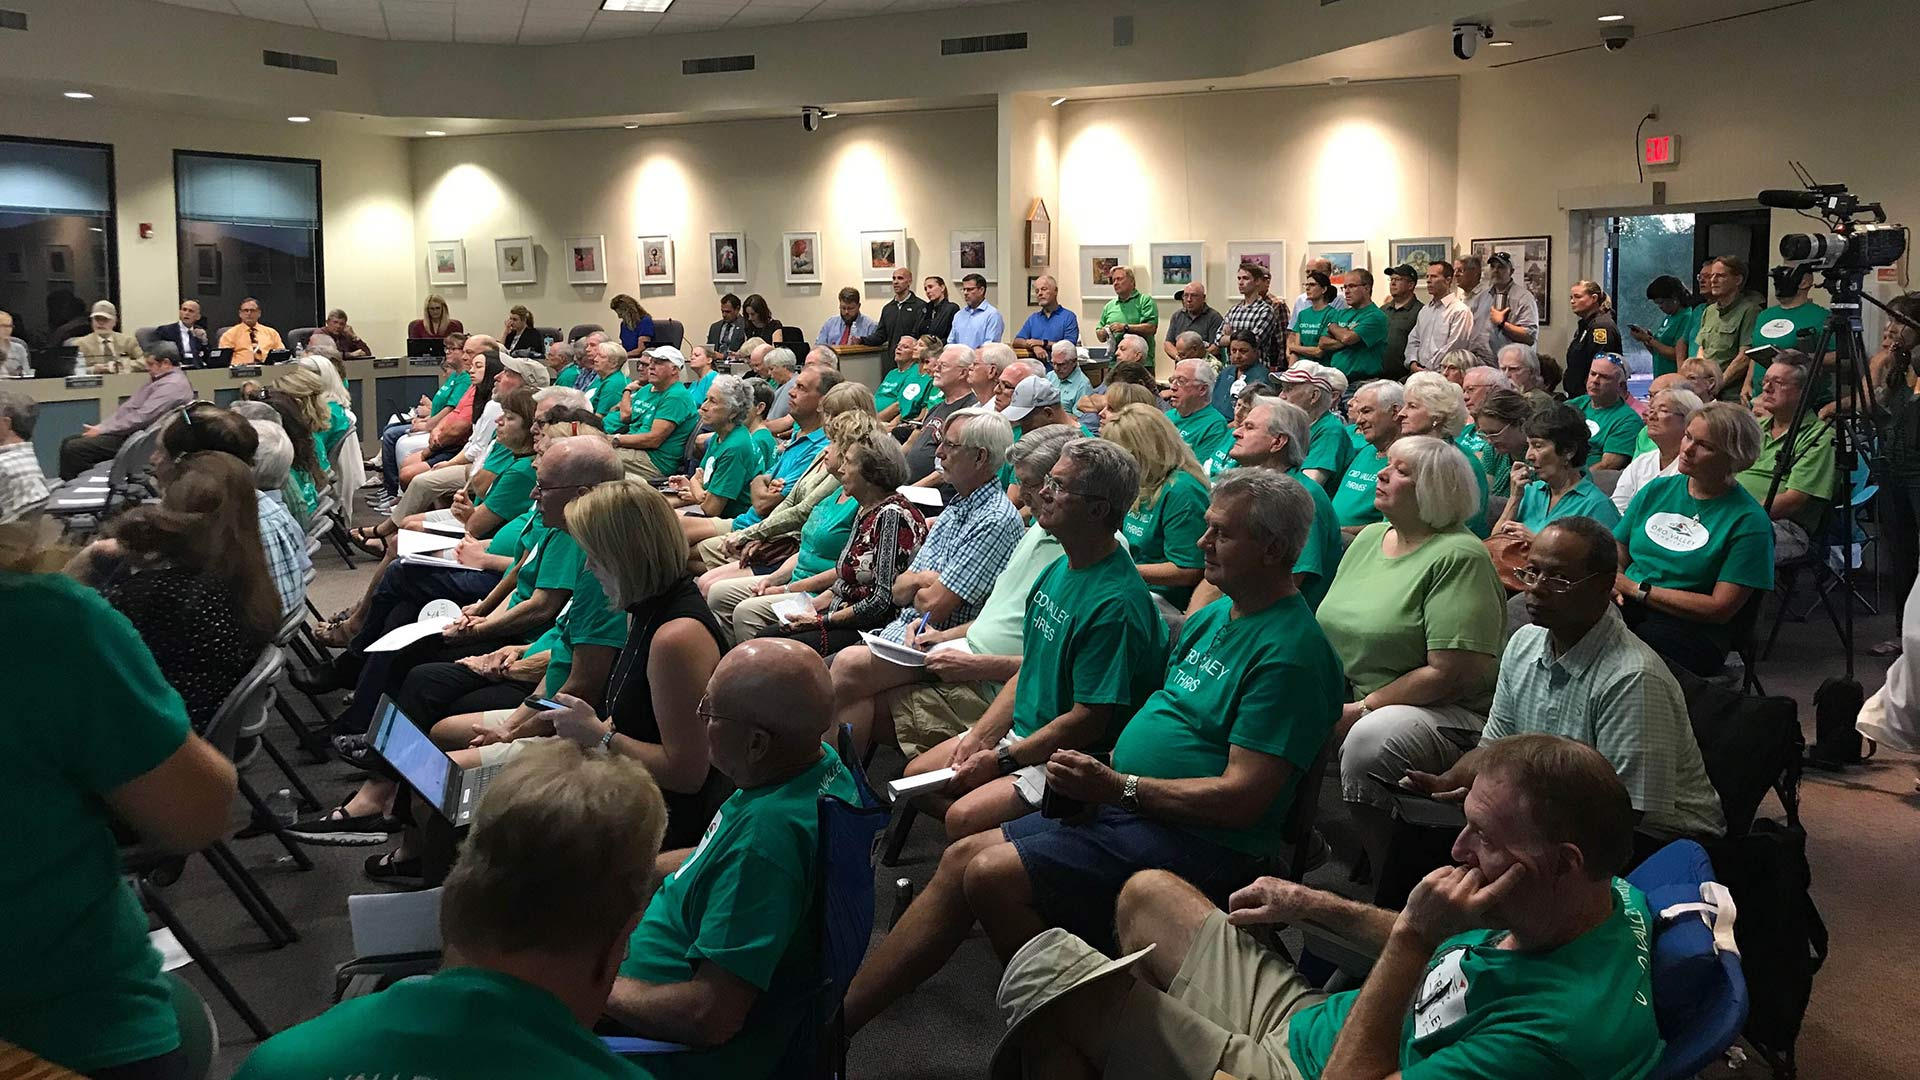 Oro Valley residents at a full-house town council meeting October 2, 2019. Supporters of a plan to keep the town-owned golf courses wore green. Some brought their own chairs.